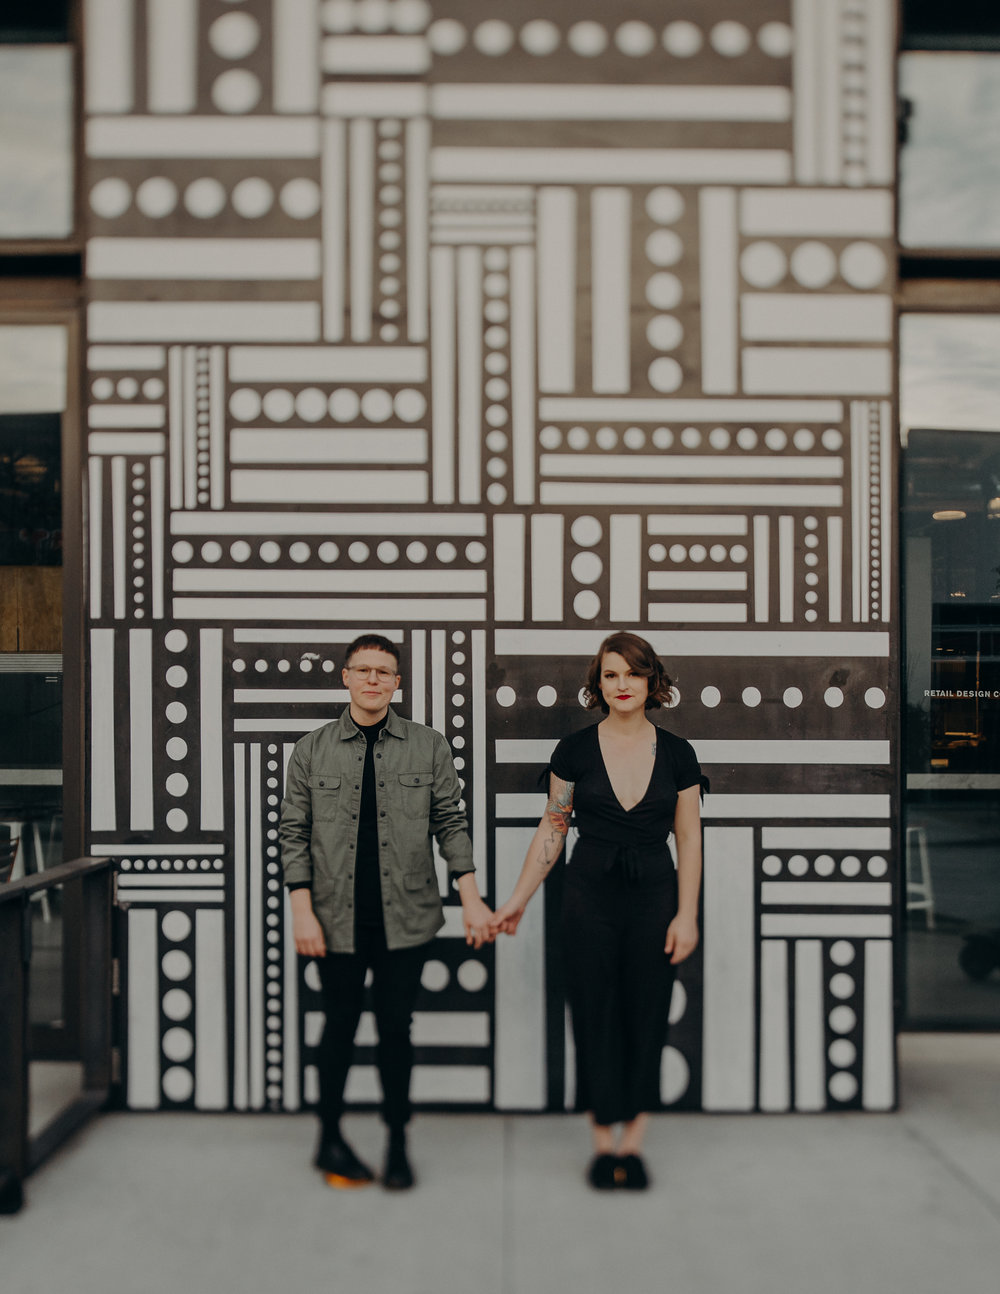 LGBTQ wedding photographer in los angeles - long beach engagement session - isaiahandtaylor.com-39.jpg